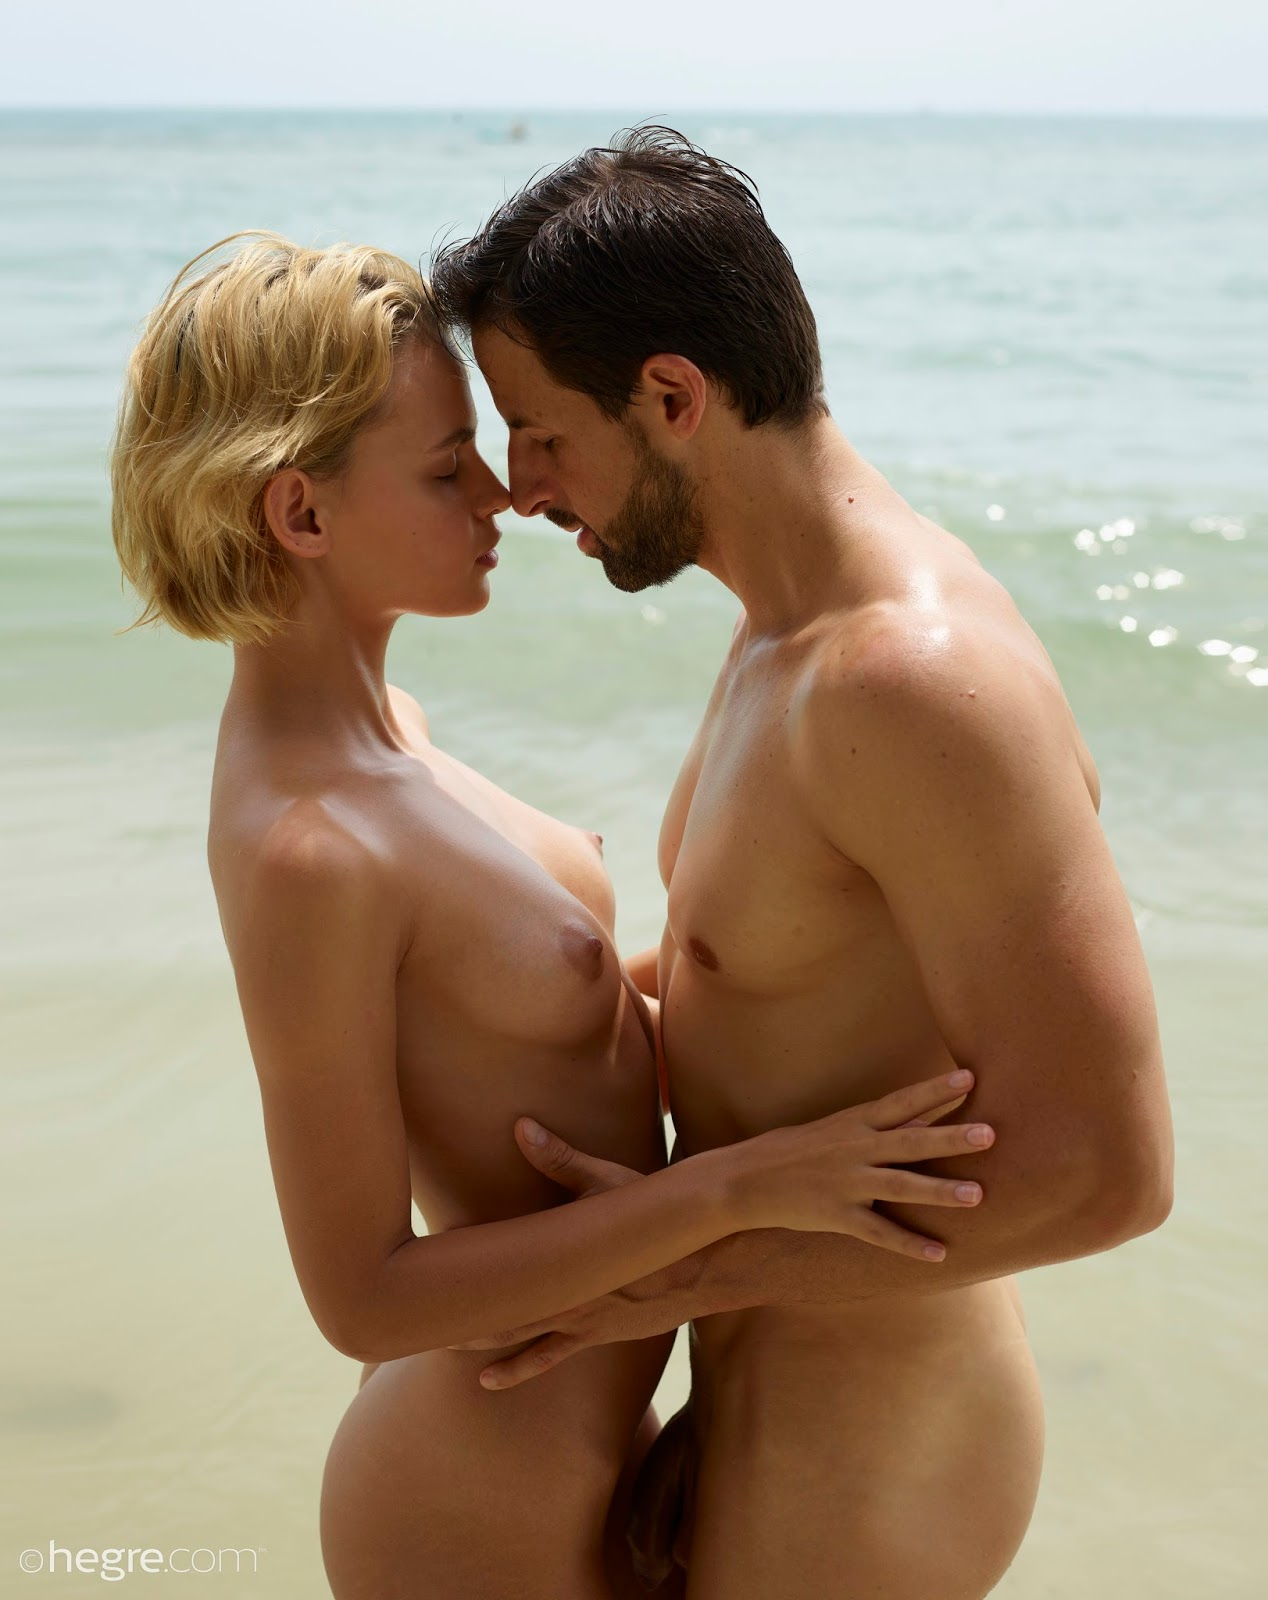 world-gaida-like-sex-on-the-beach-items-jerk-off